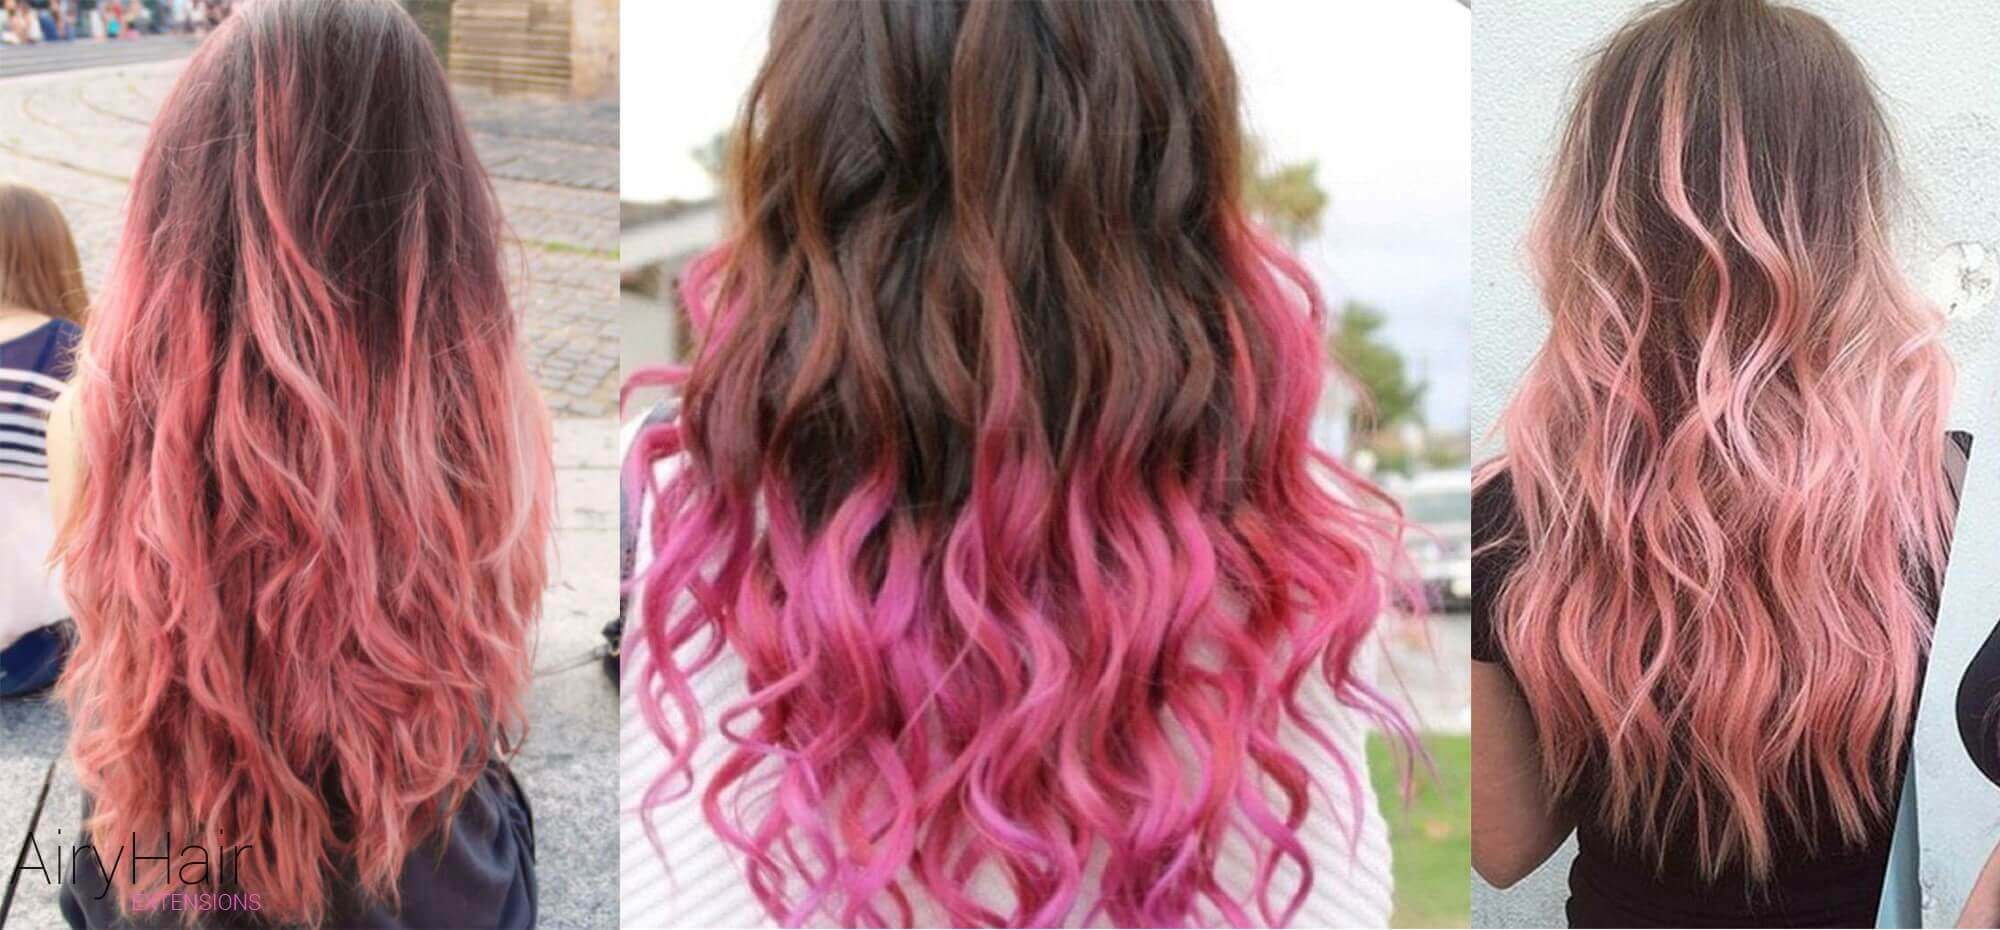 Brown and pink hair color